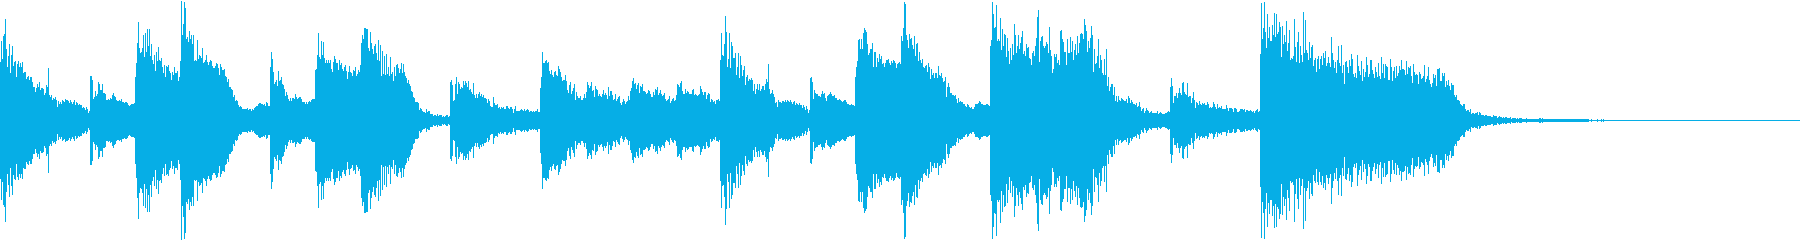 Comical naughty cute fun CM f's reproduced waveform